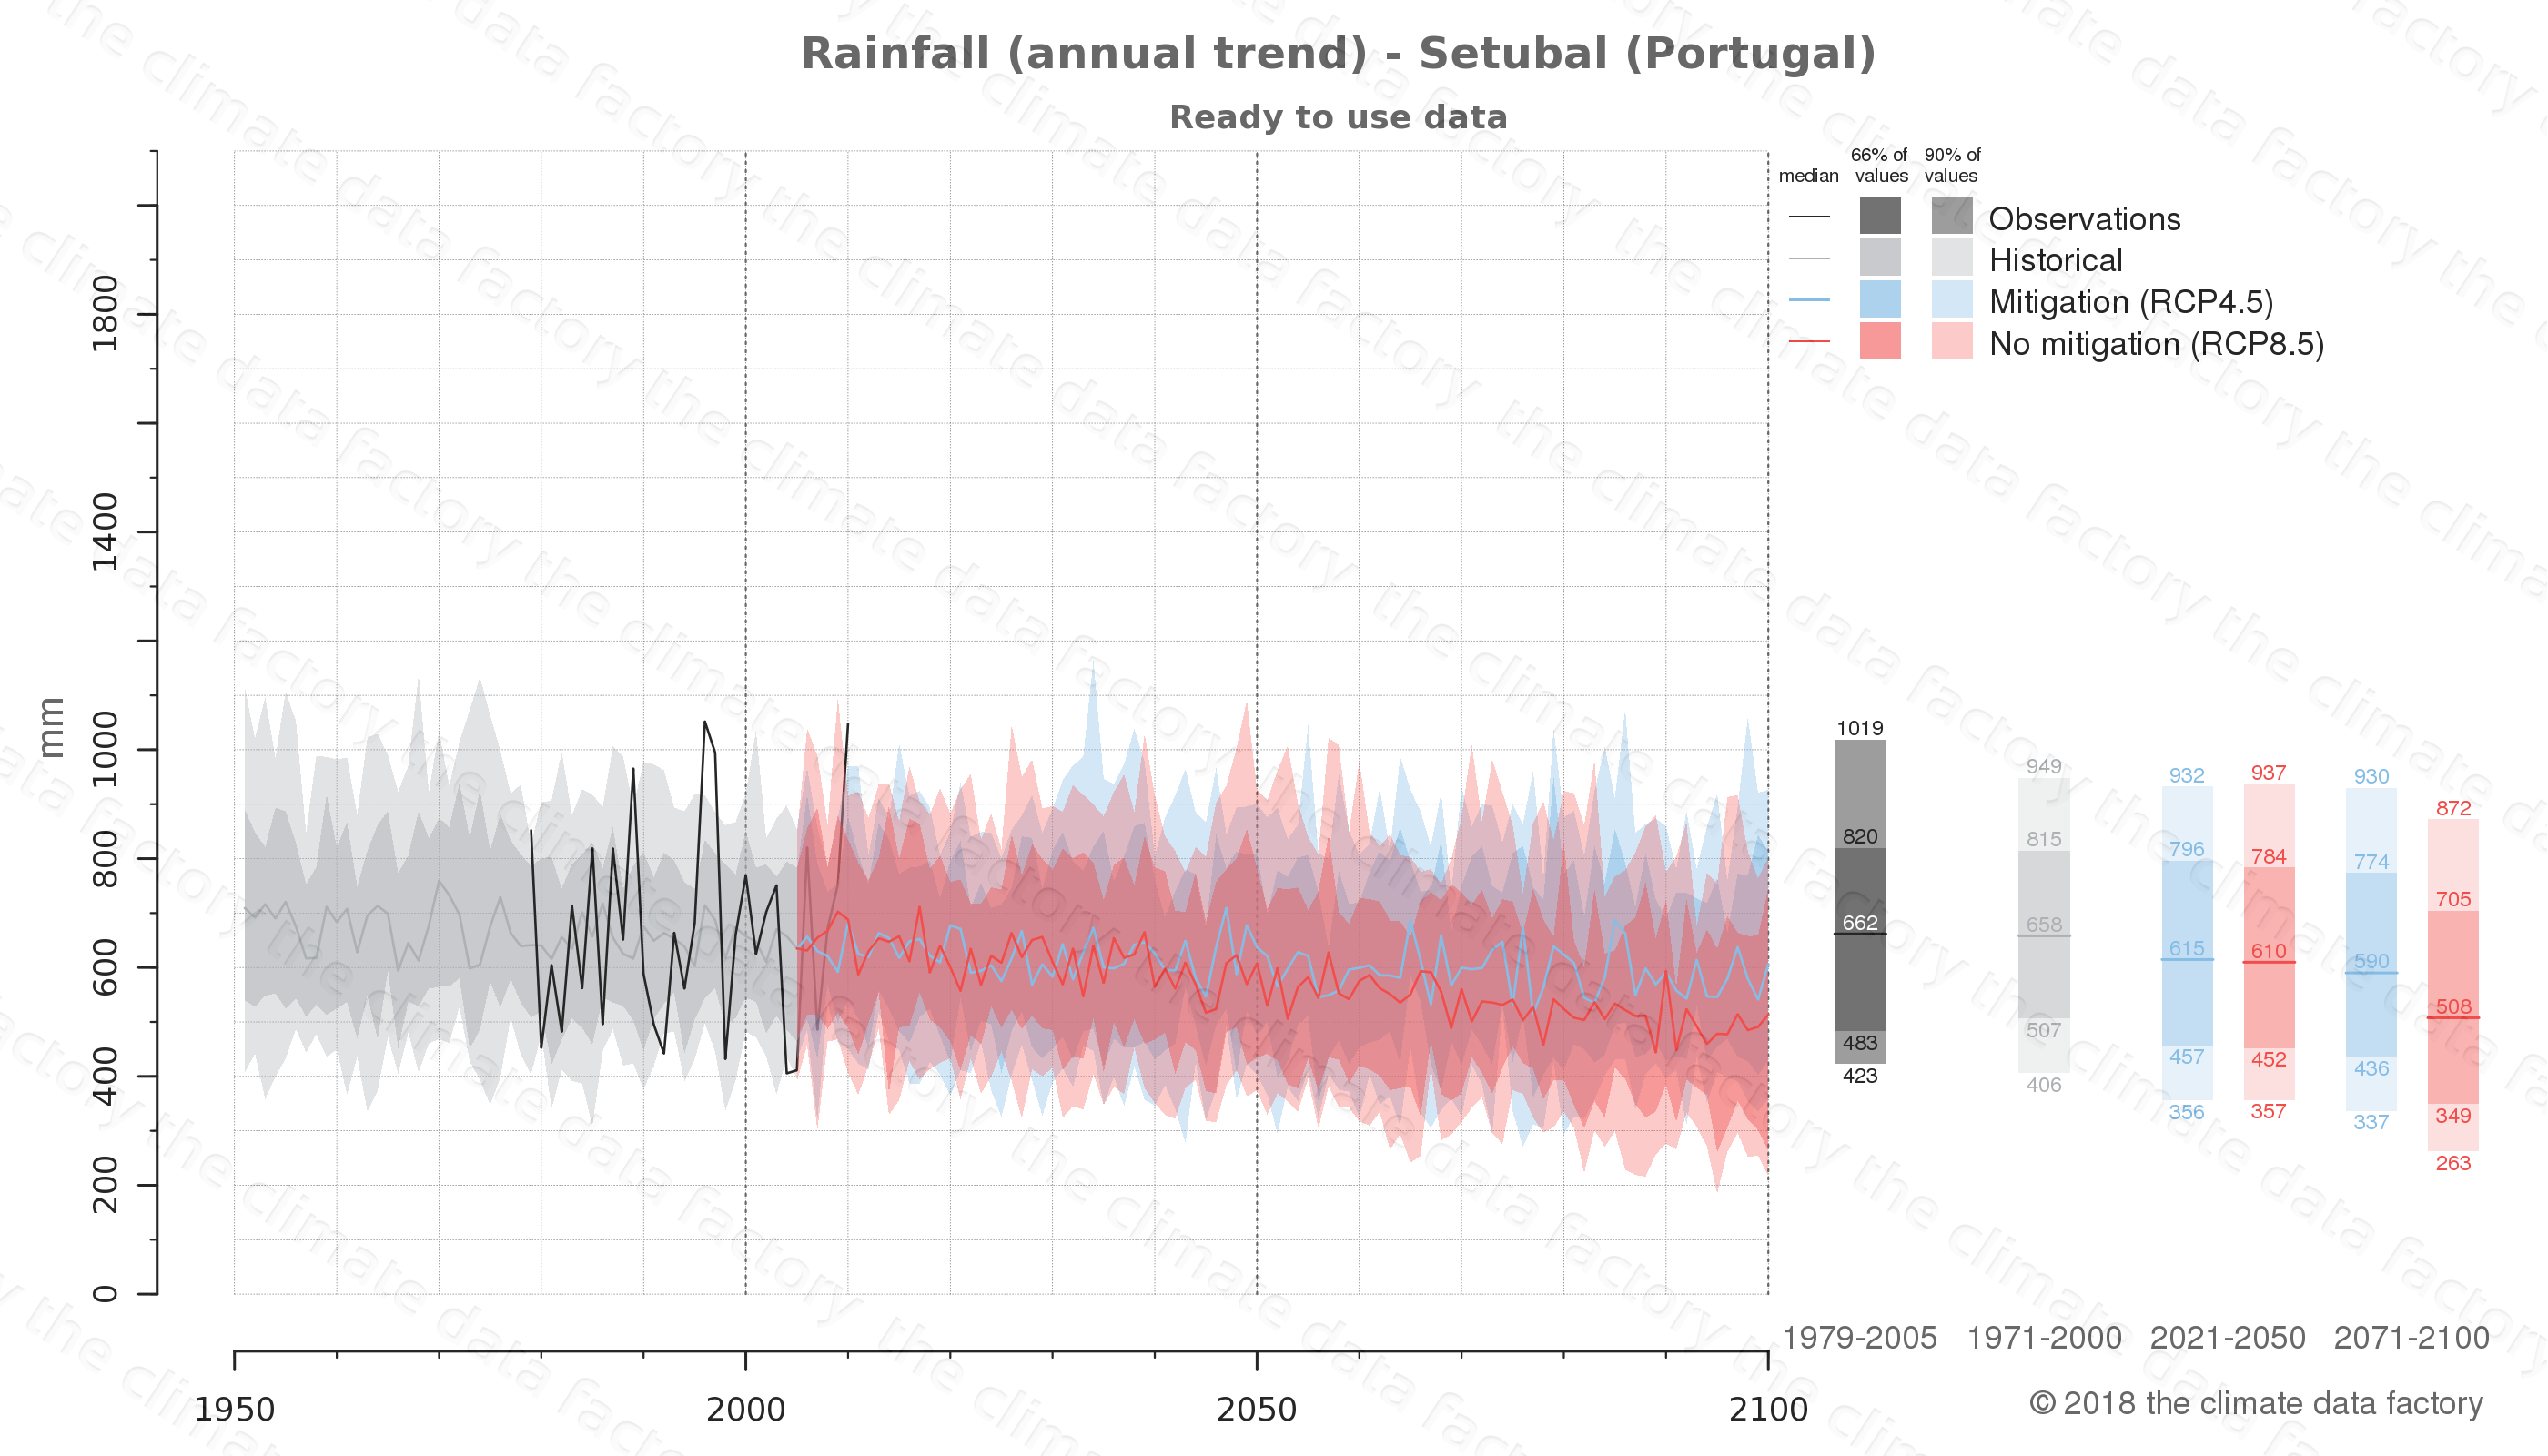 climate change data policy adaptation climate graph city data rainfall setubal portugal